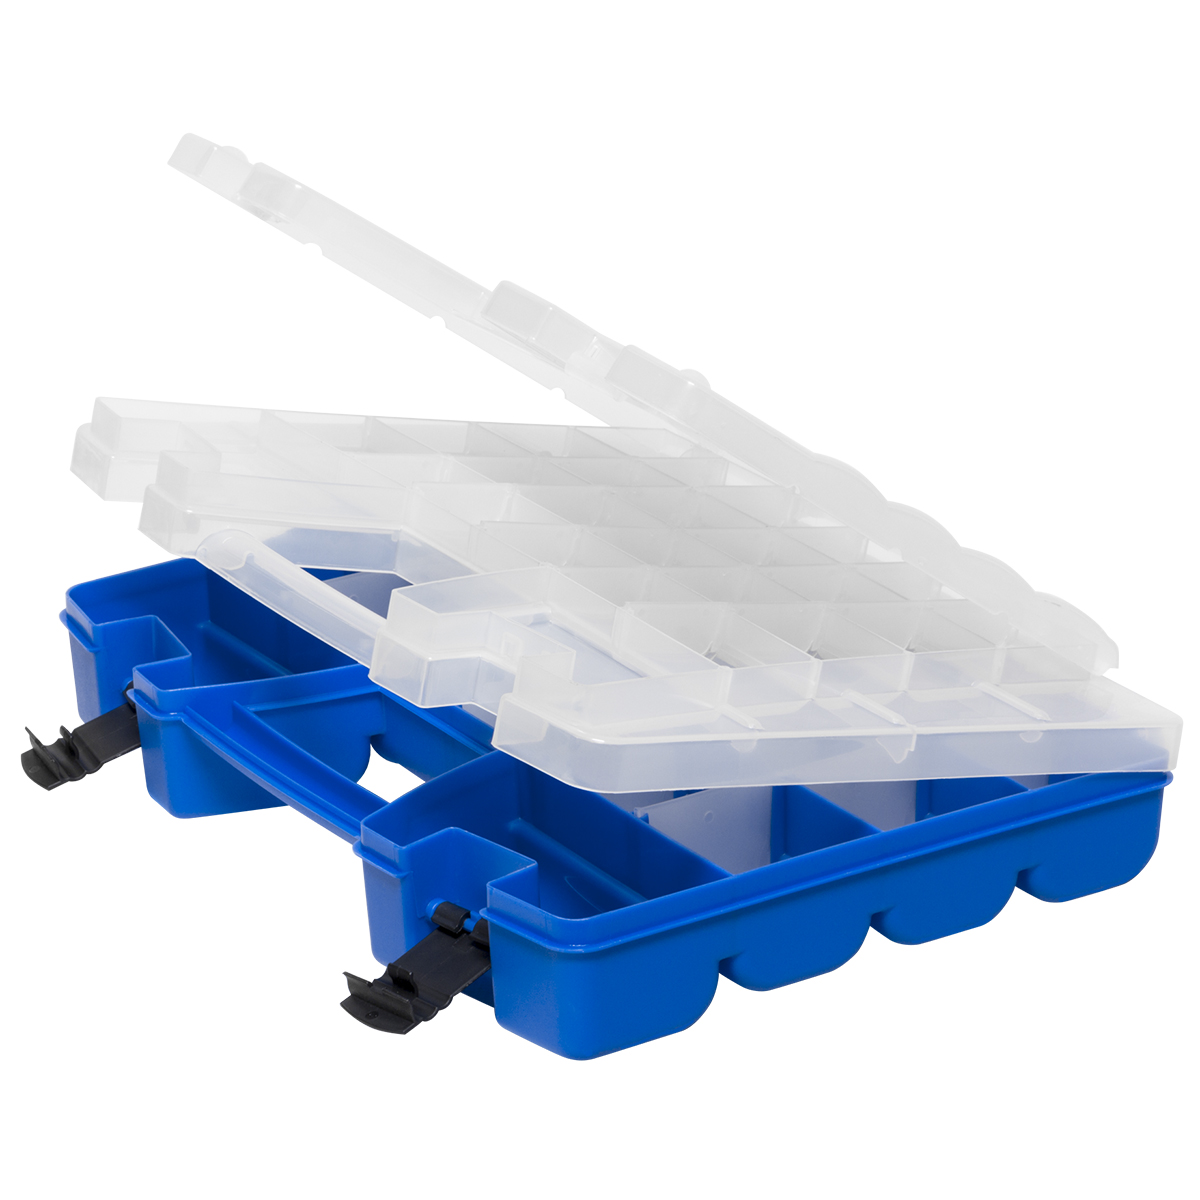 Item DISCONTINUED by Manufacturer.  Portable Organizer, 46 Compartment 15 x 11-5/16 x 3-1/4, Purple (06215CP4PK).  This item sold in carton quantities of 4.